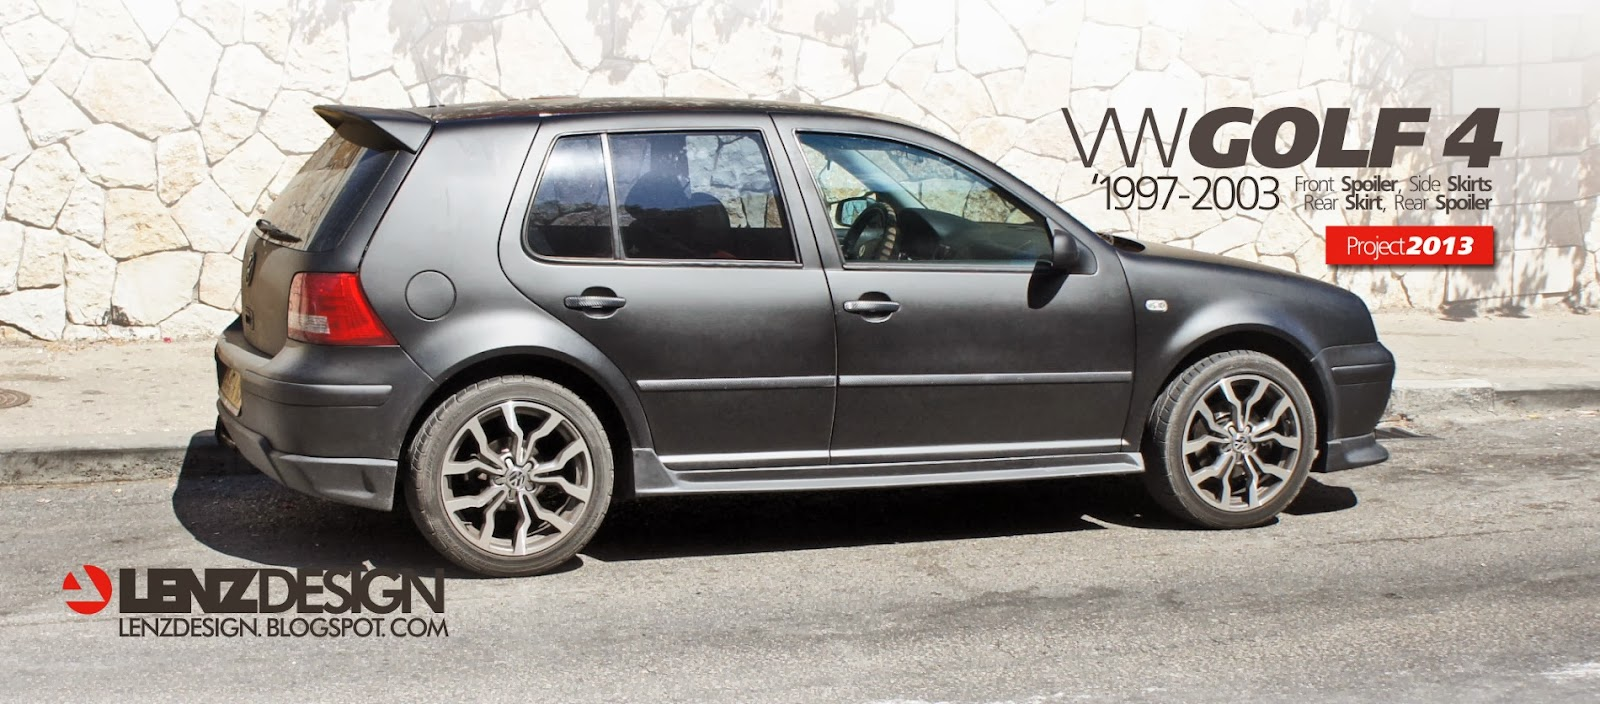 hight resolution of vw golf 4 tuning lenzdesign